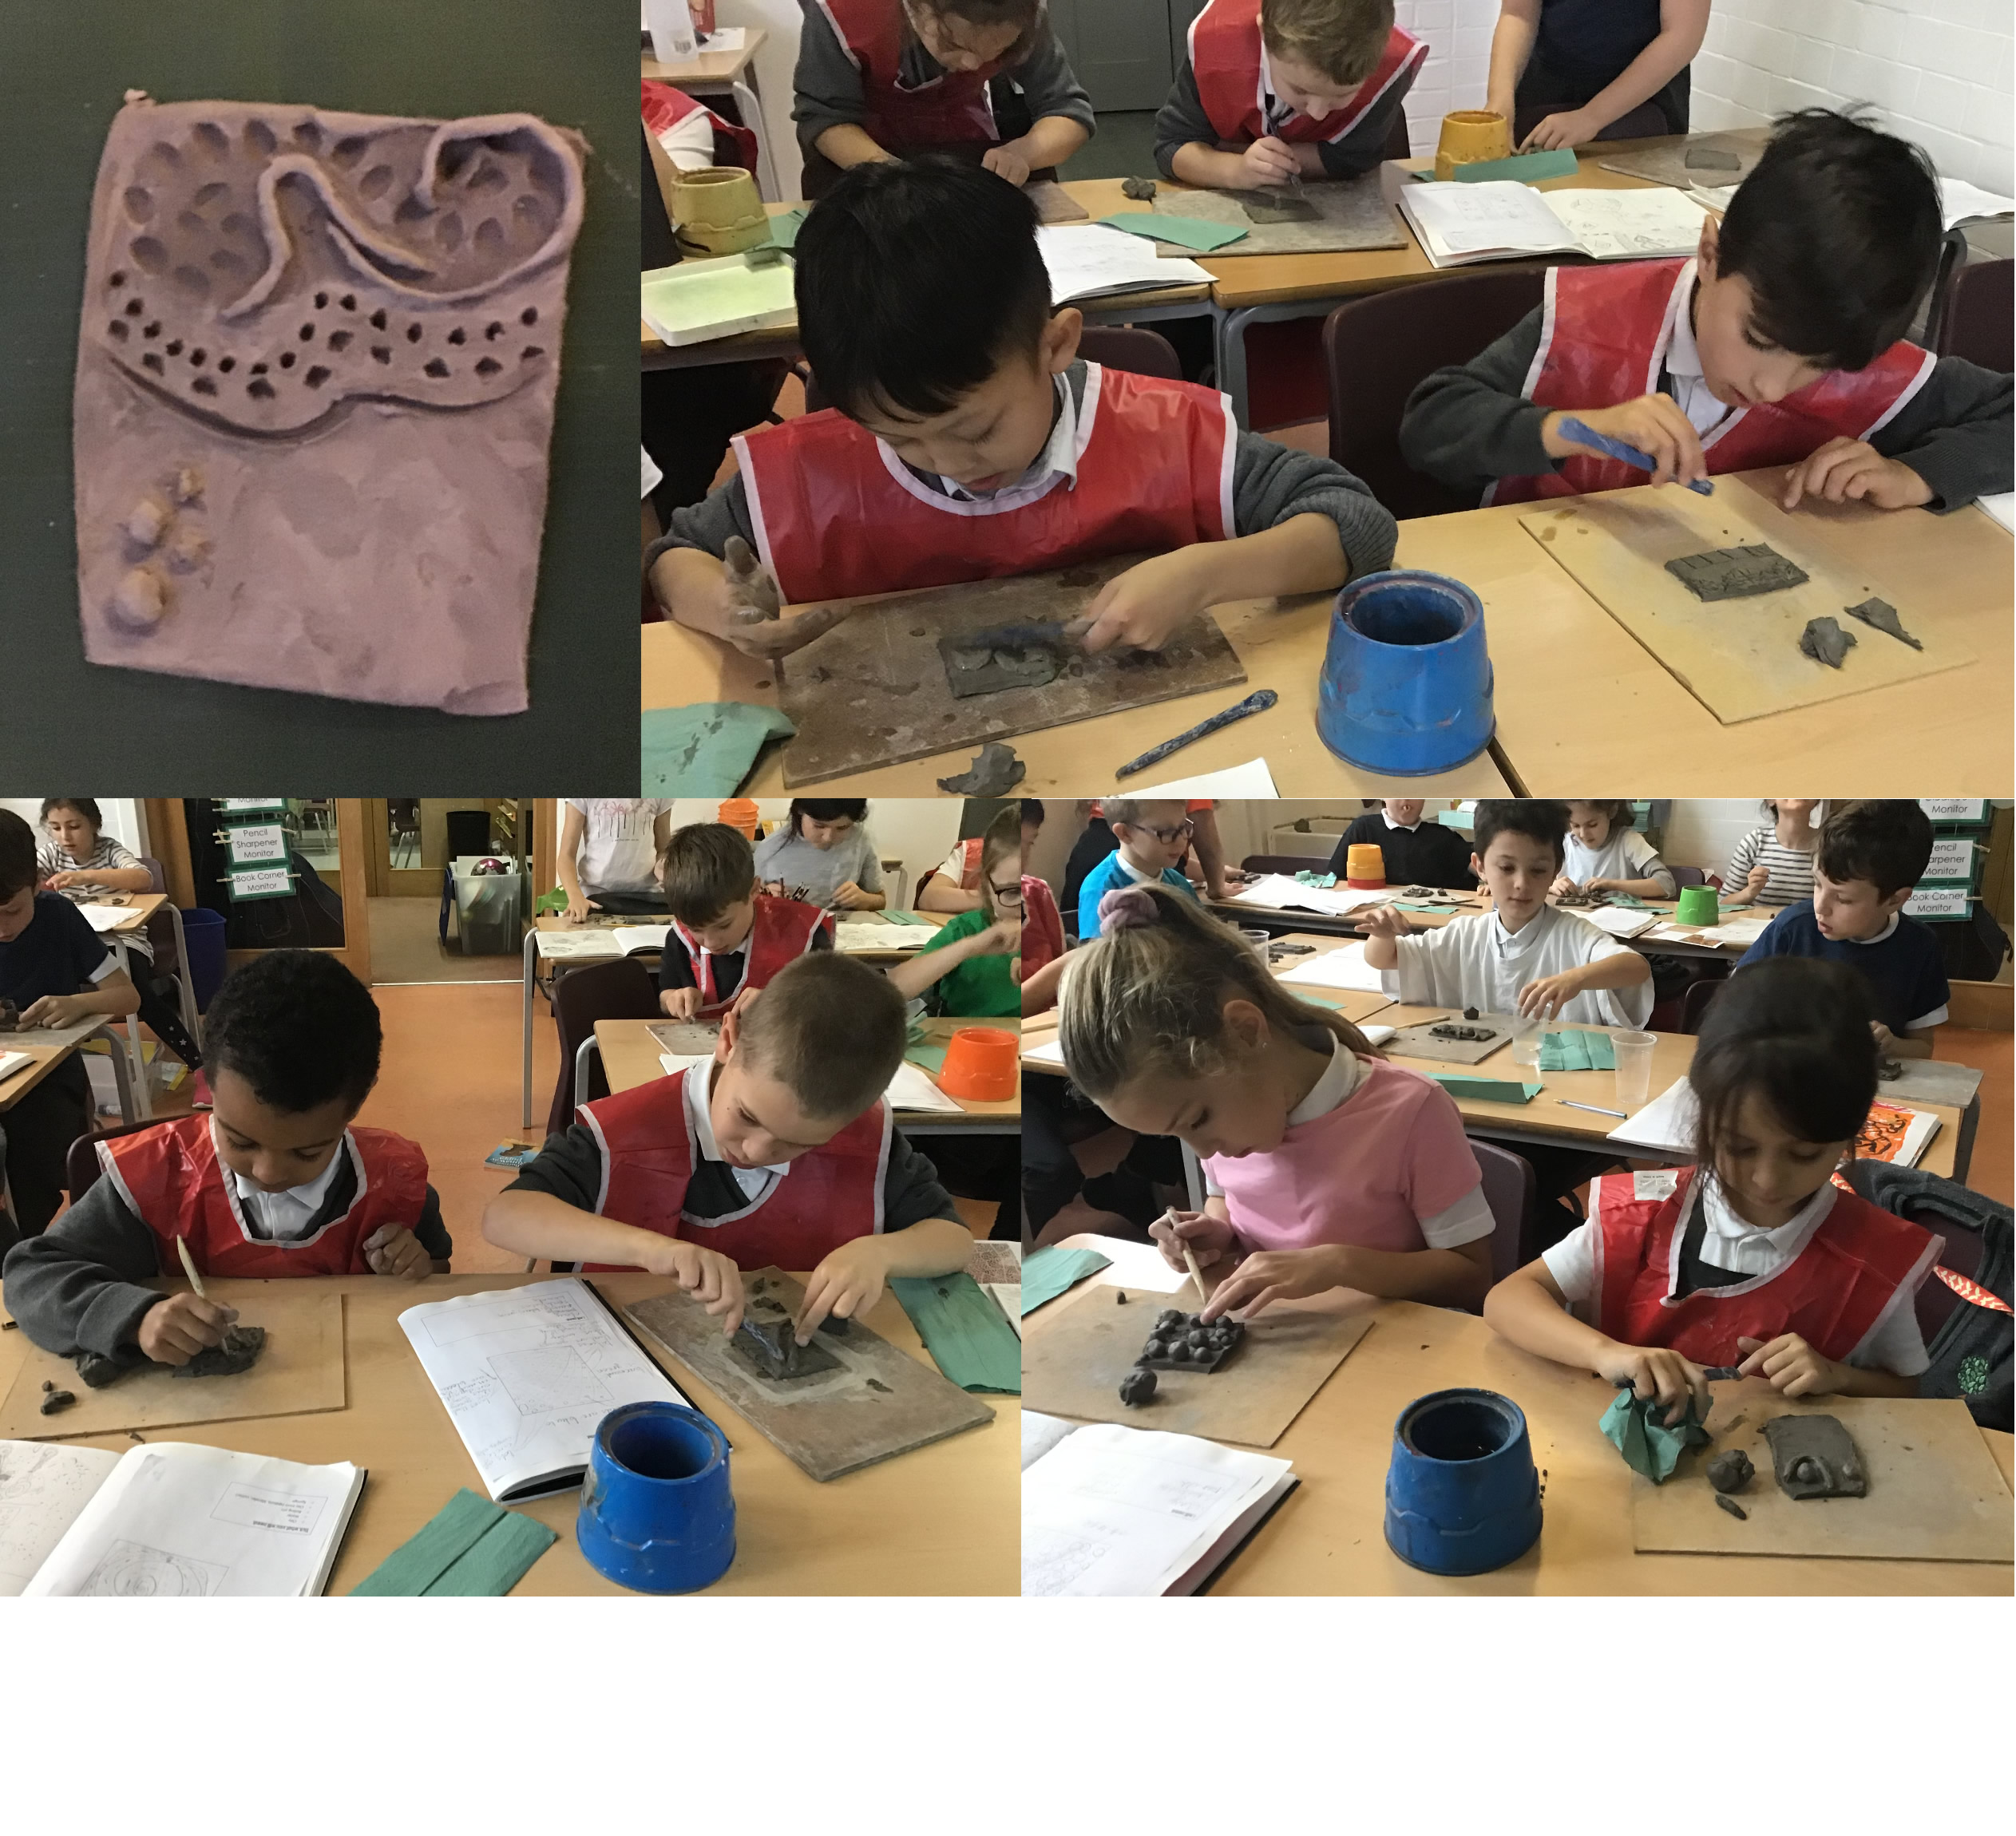 Inspired by work of an artist, we created clay tiles.